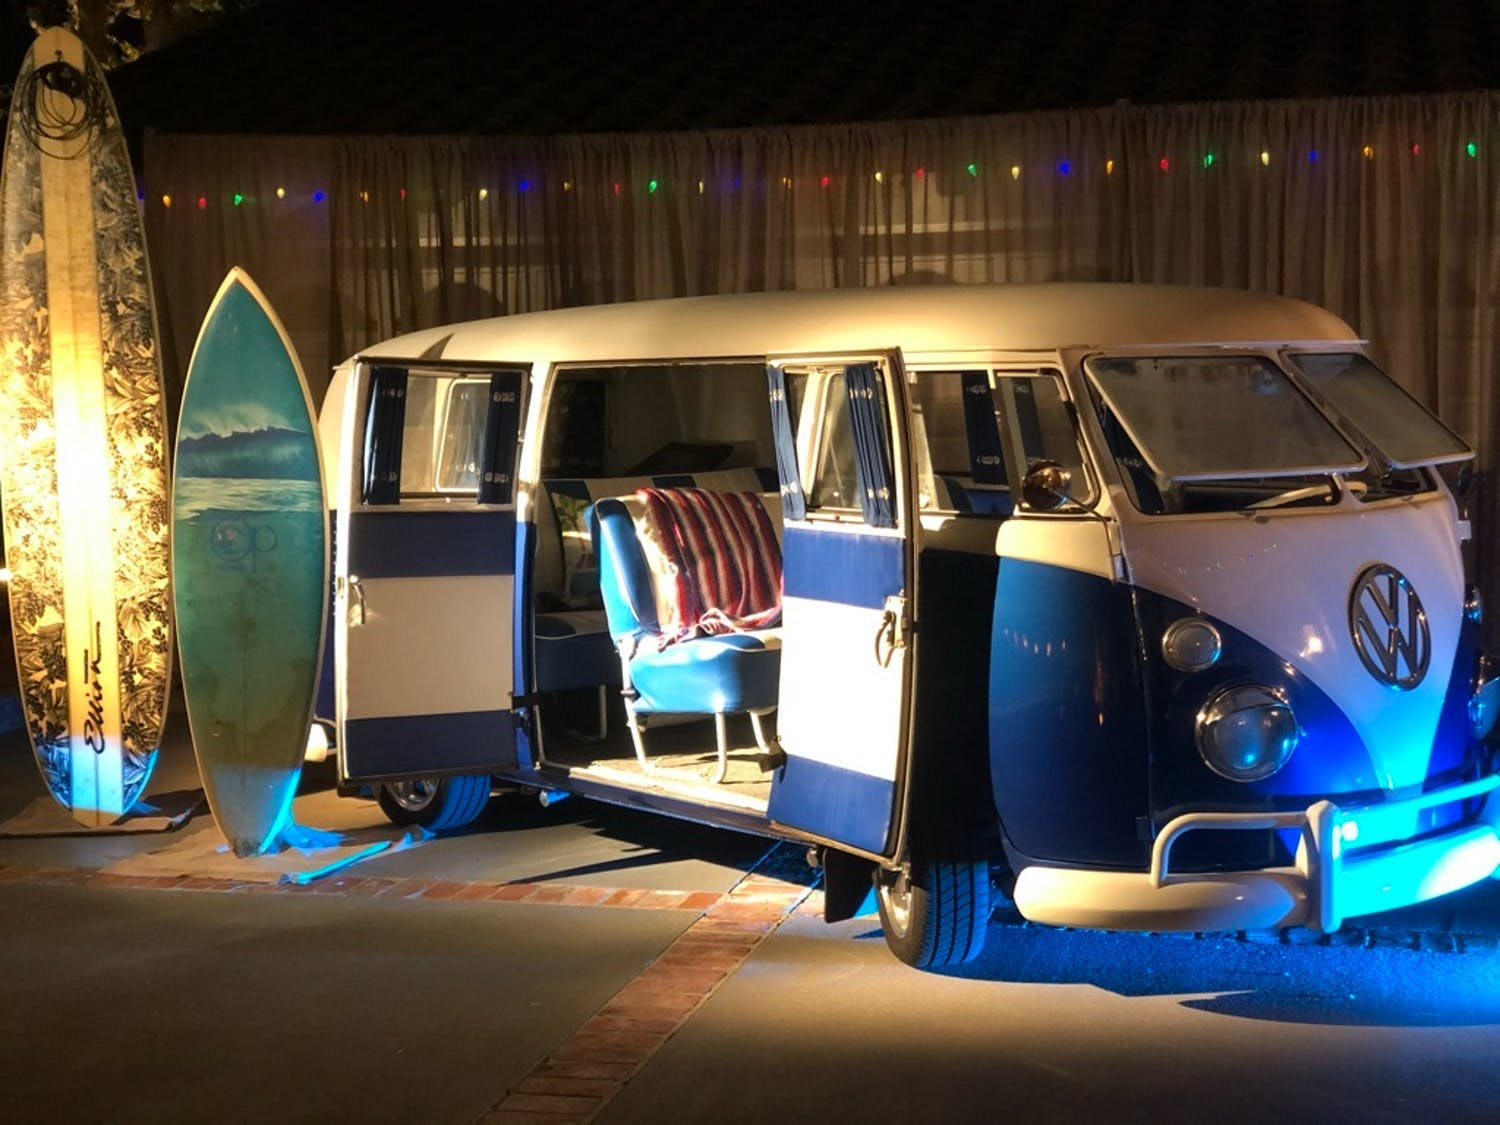 Surfer Bus Transformed into Lounge Area and Photo Op for Small Birthday Party | PartySlate